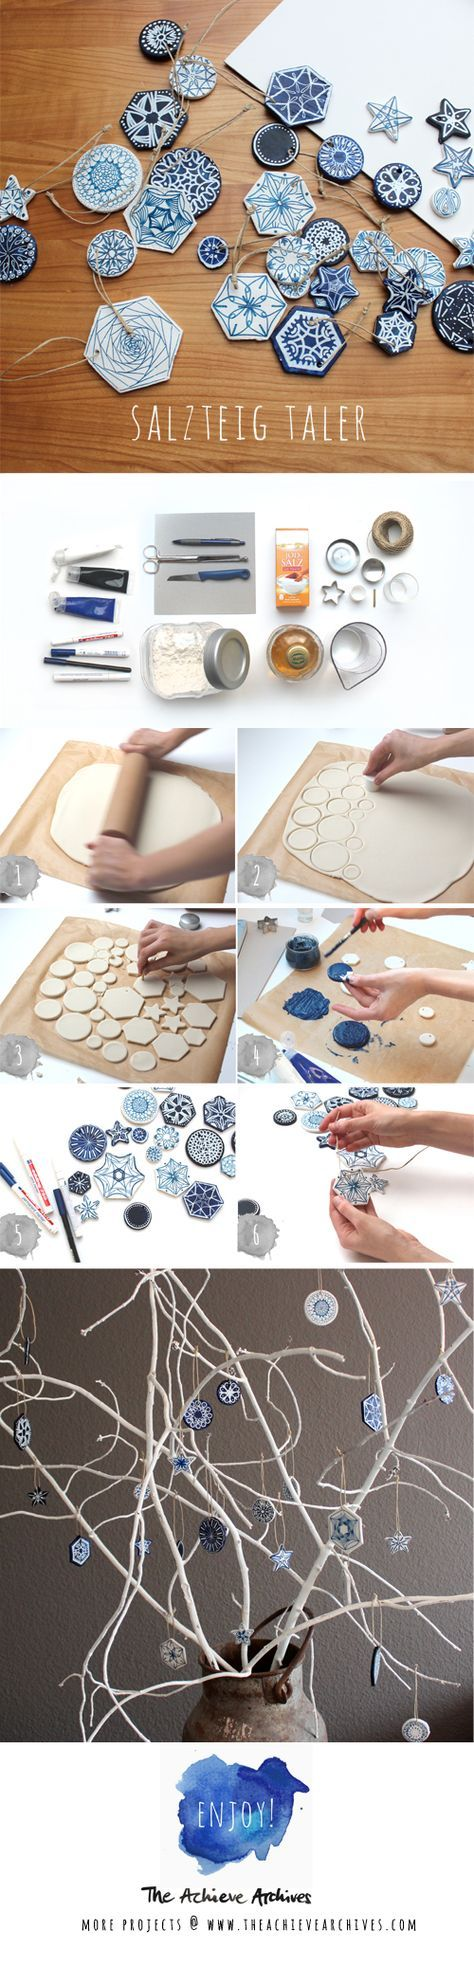 How To Do Salt Dough Decoration with Bluepainting | www.theachievearchives.com (Christmas Crafts Diy)